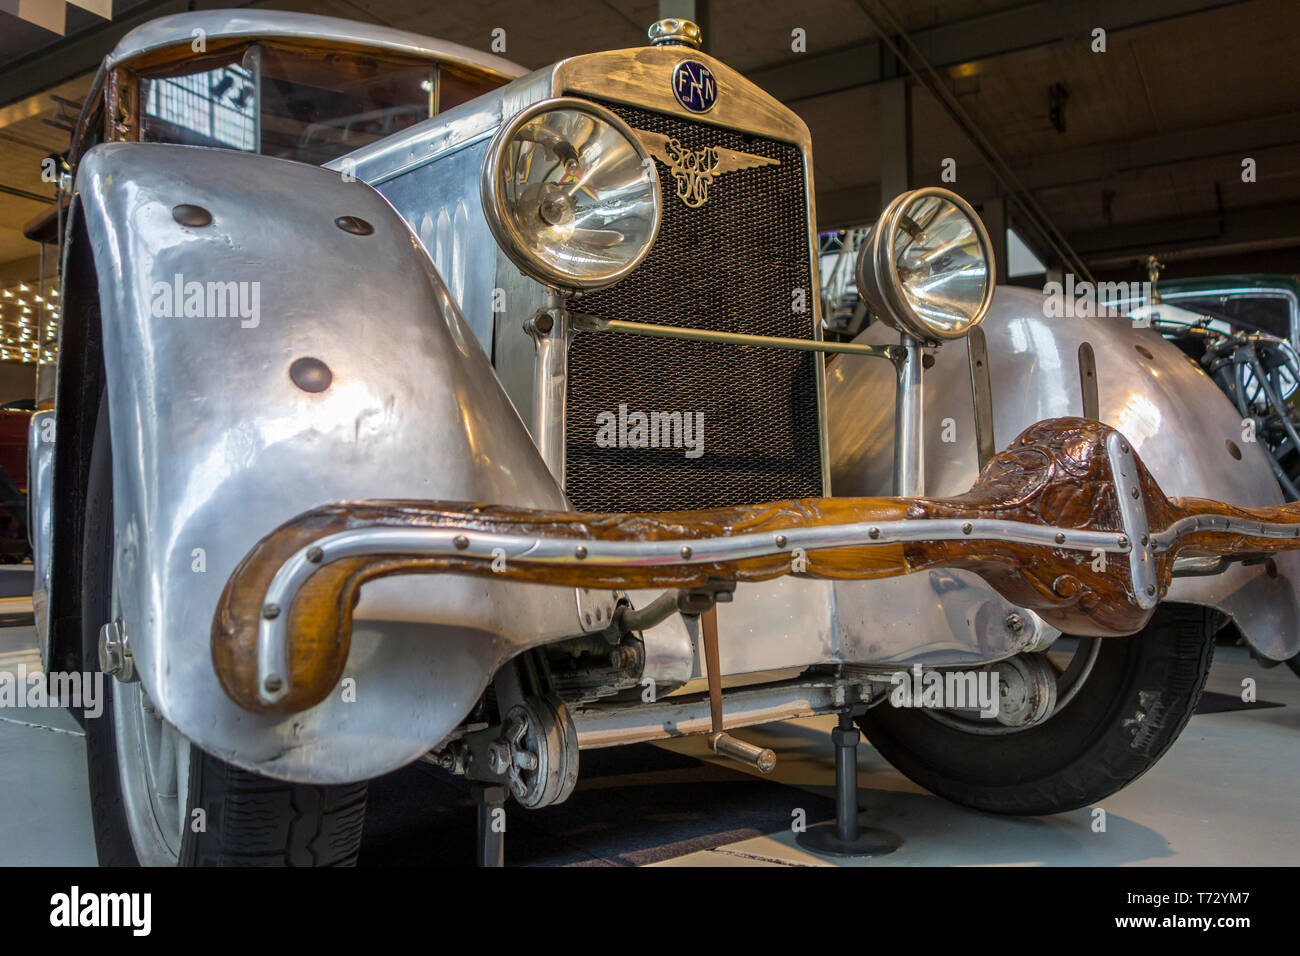 1930 FN 1400 S showing wooden front bumper of Belgian classic car / oldtimer at Autoworld, vintage automobile museum in Brussels, Belgium - Stock Image